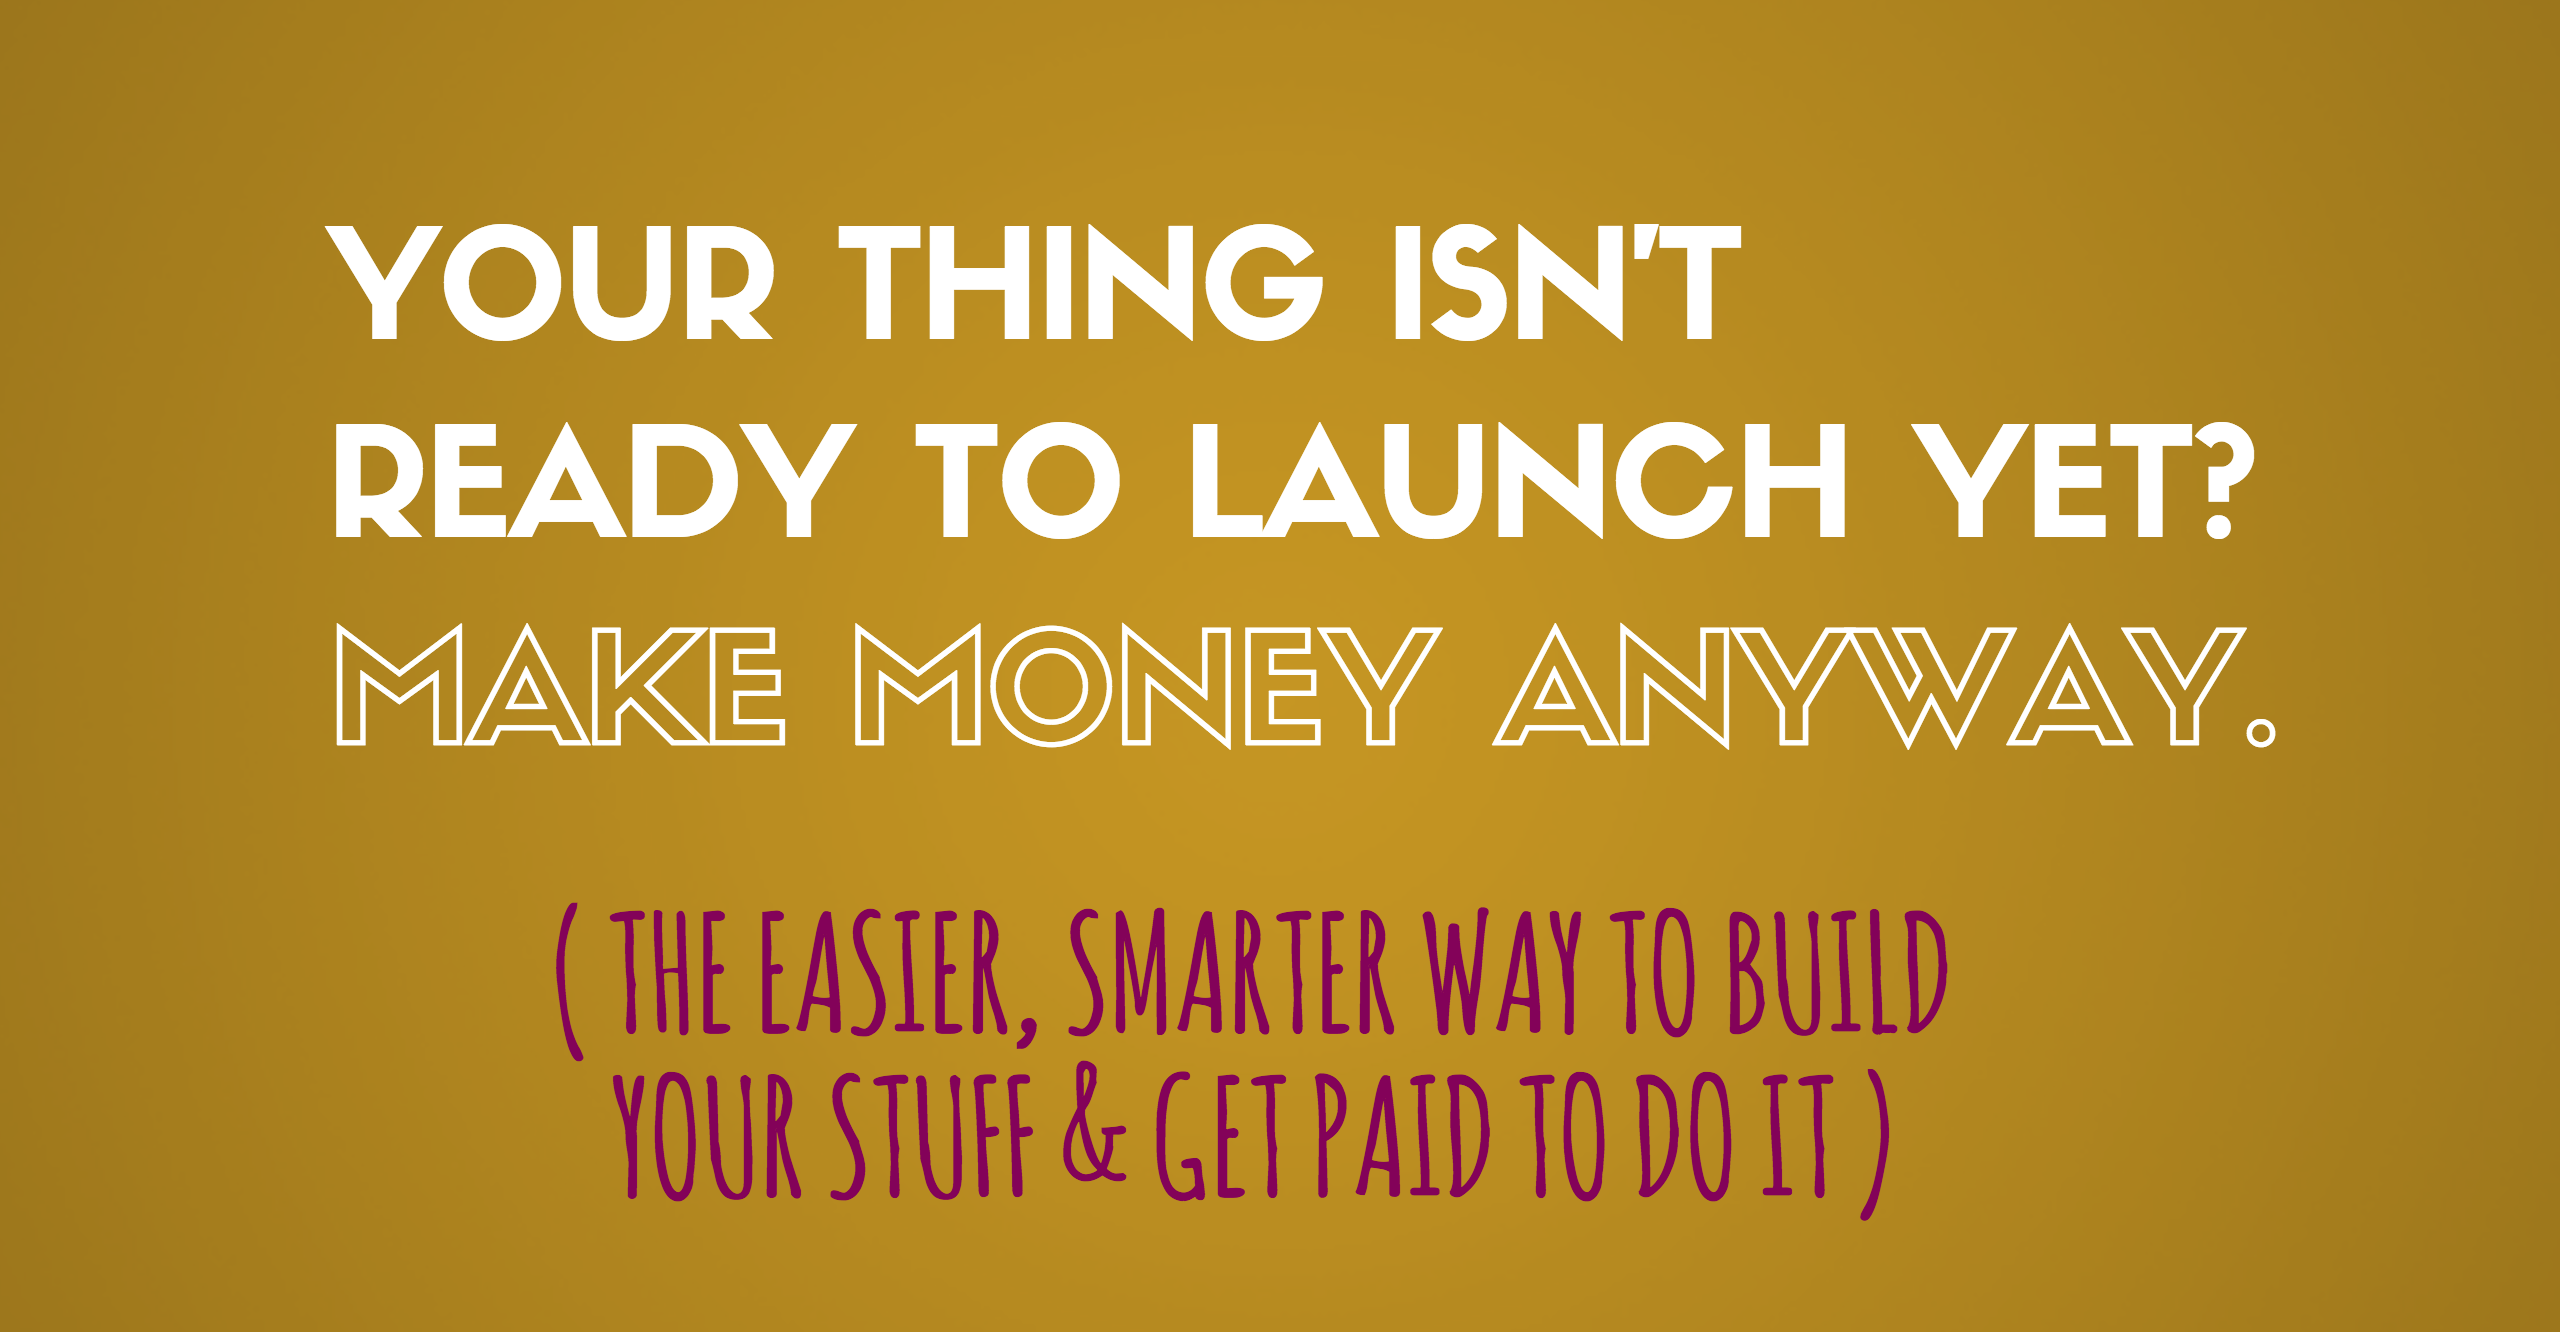 Is Your Biz Not Ready for Launch Yet? How to Start Making Money Anyway.